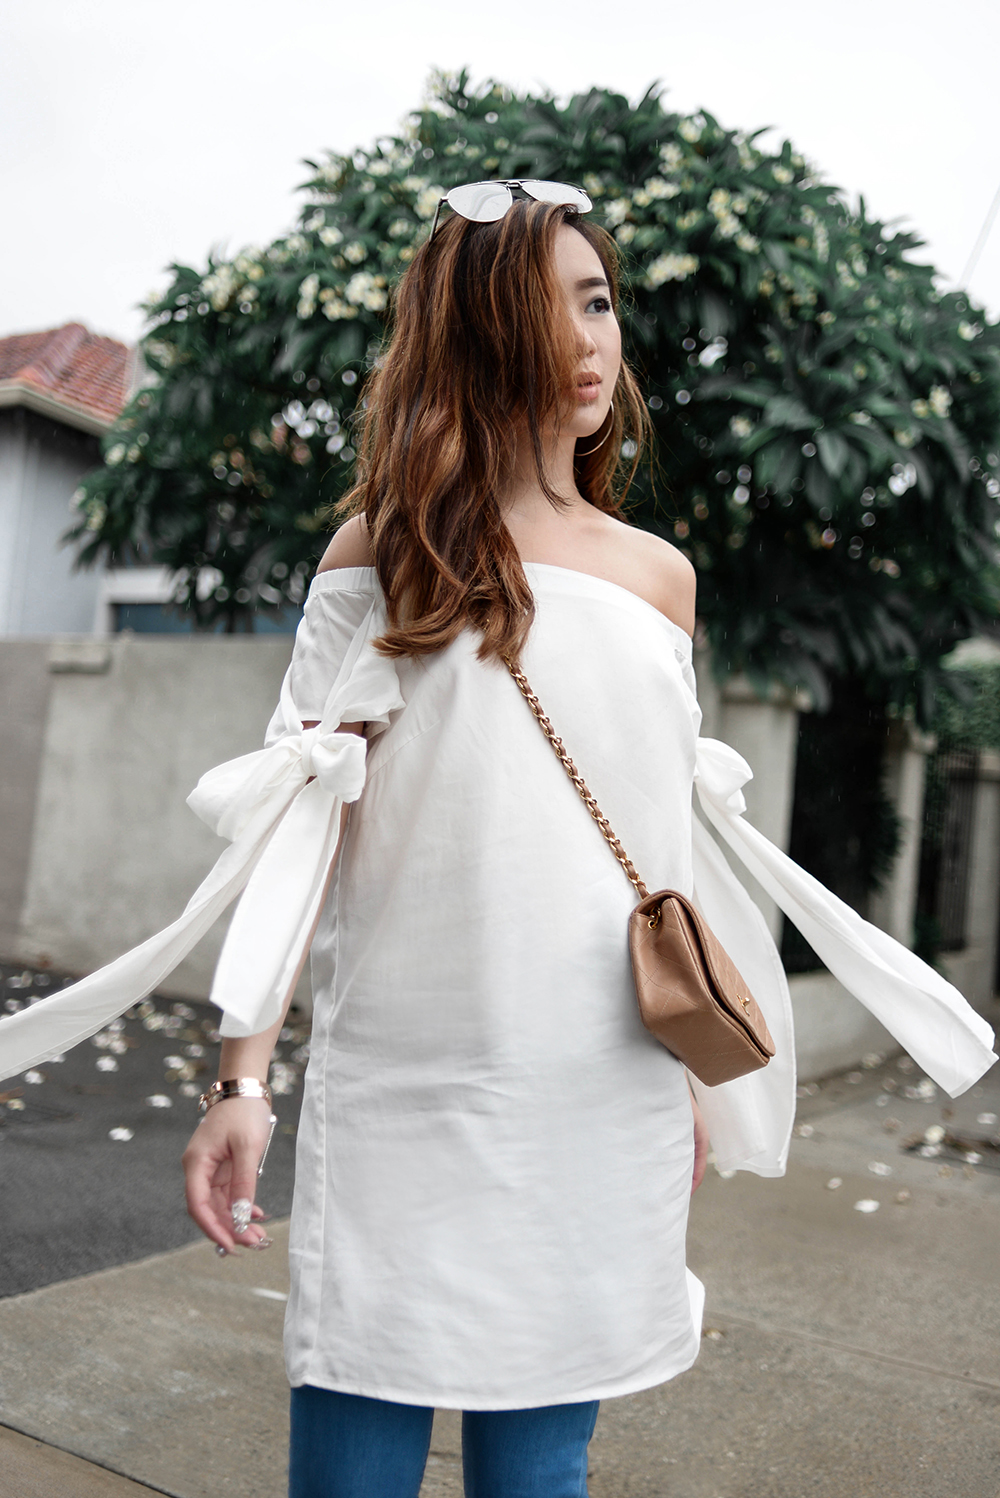 willabelle-ong-paledivision-street-style-fashion-travel-lifestyle-blog-singapore-australia-outfit-editorial-chanel-camel-mini-quilted-leather-bag-white-off-shoulder-top